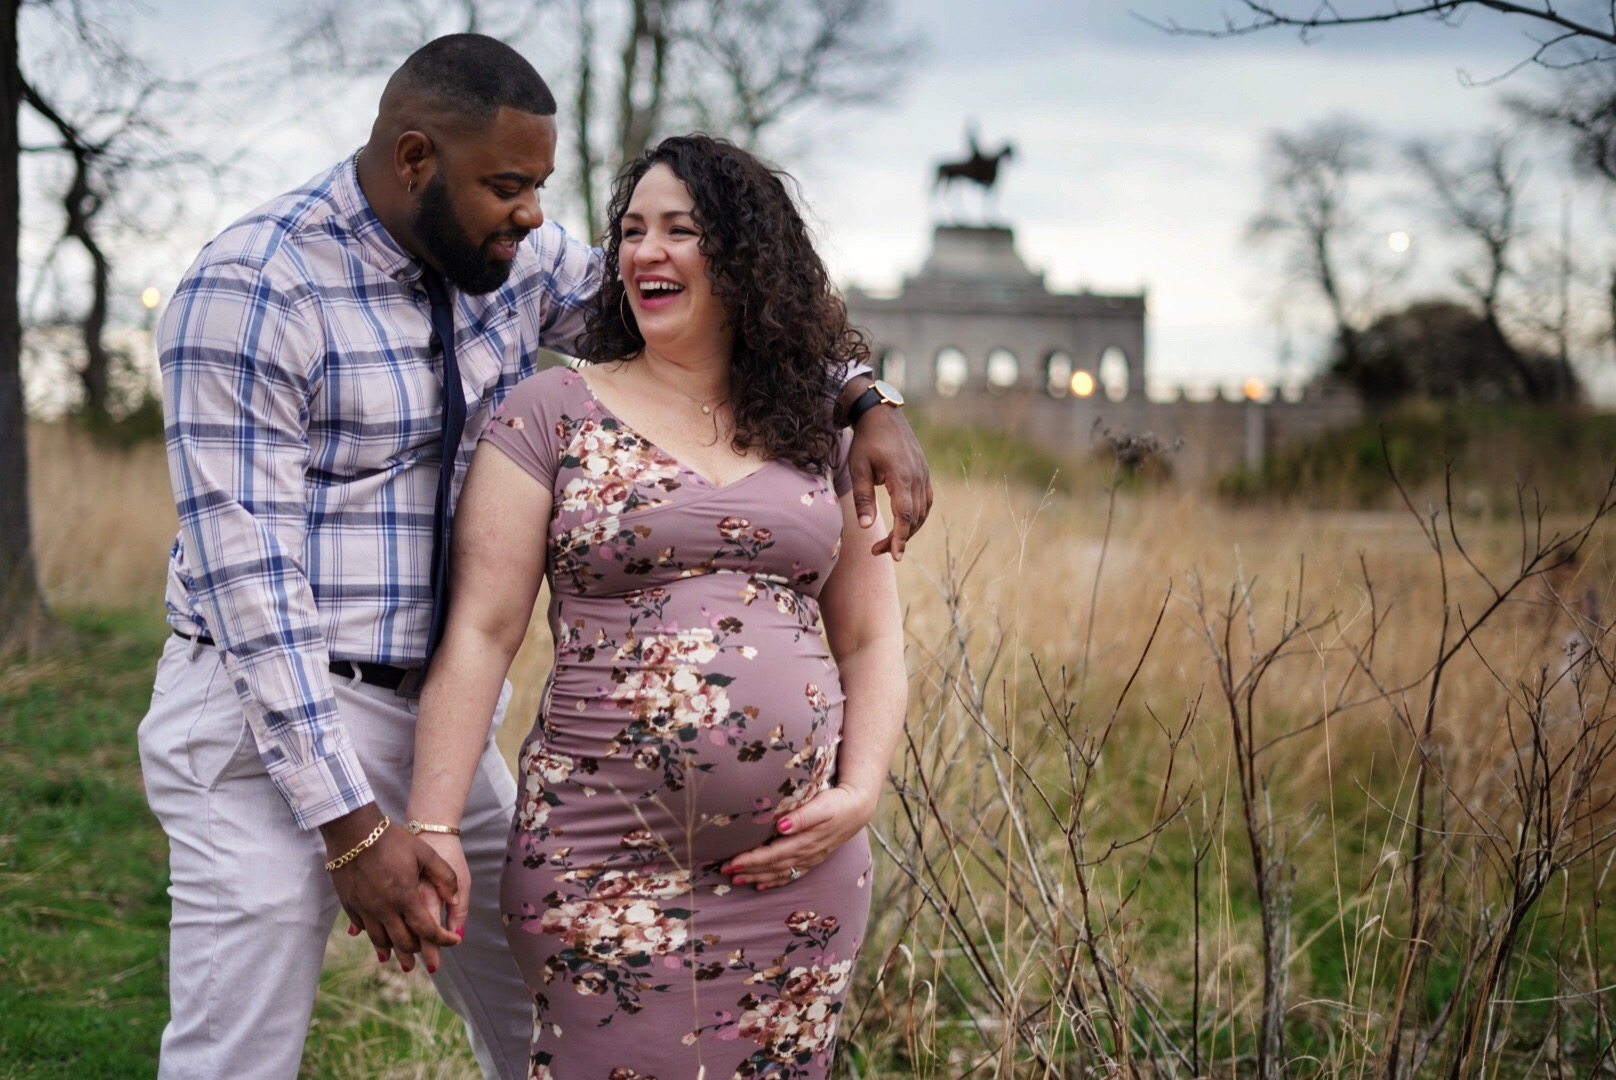 lincoln-park-chicago-maternity-photography-ulysses-grant-monument.jpeg